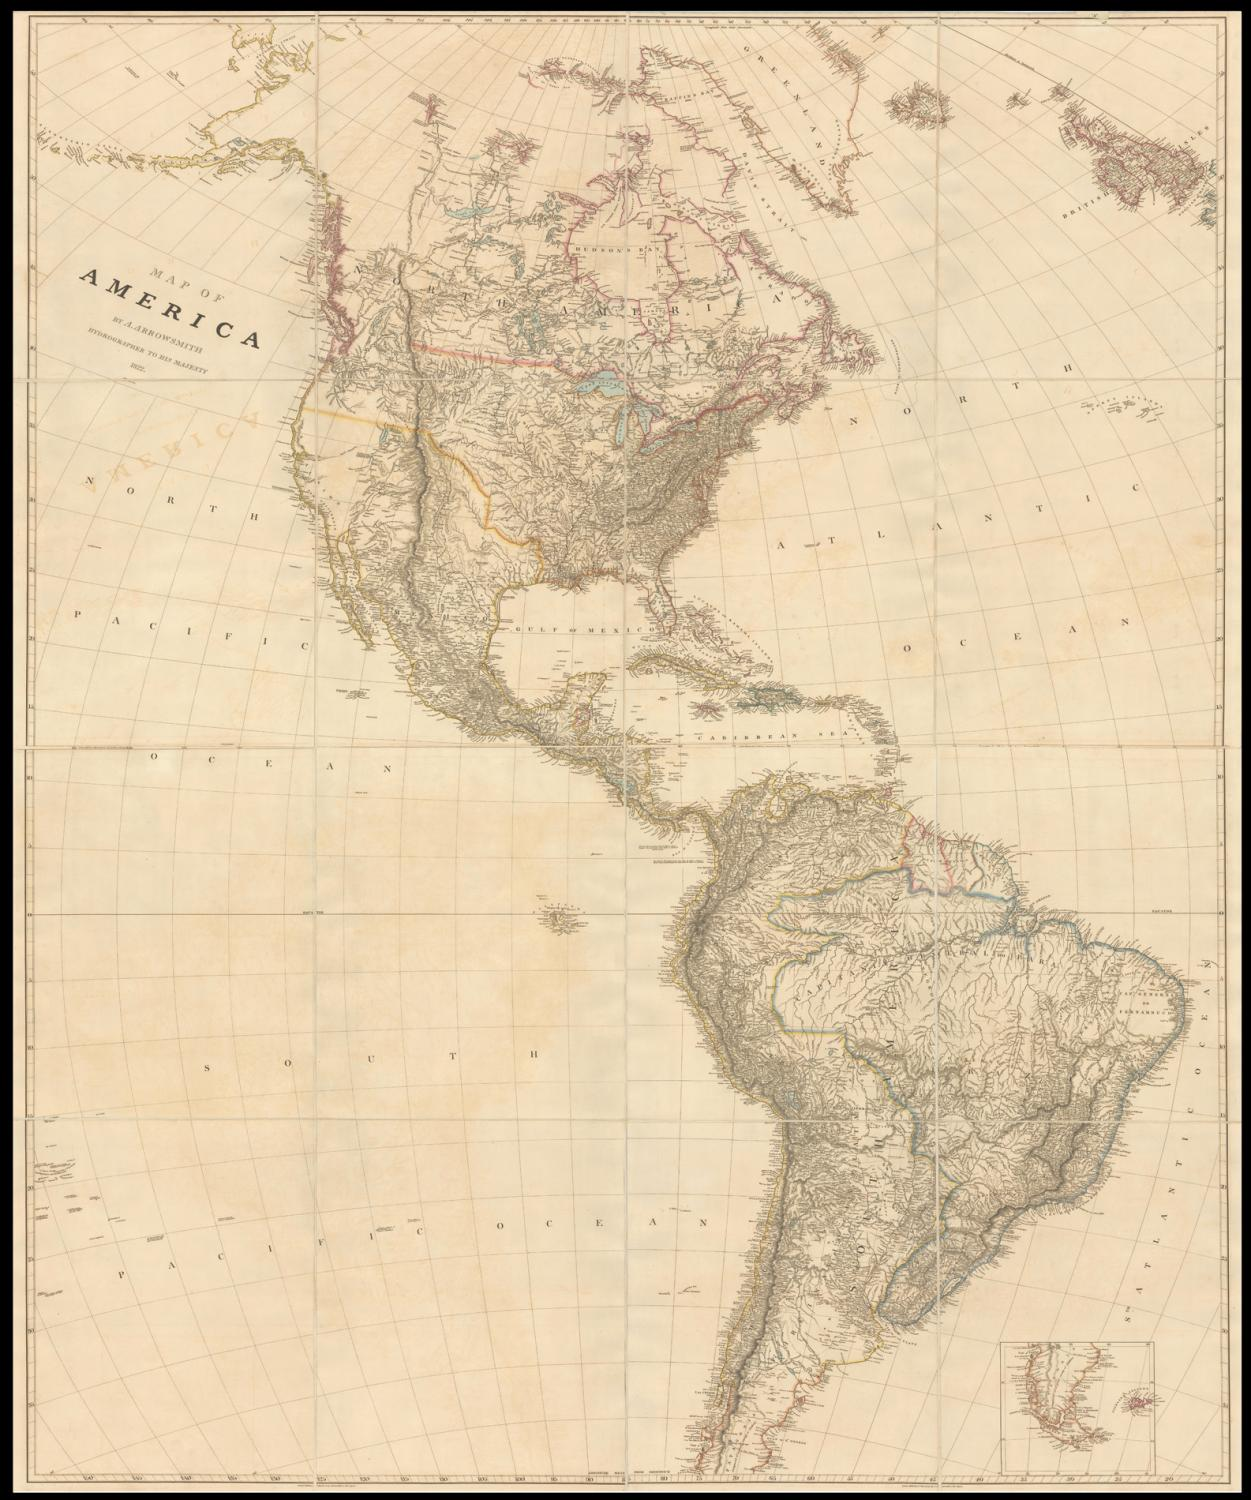 Map of America - 1822